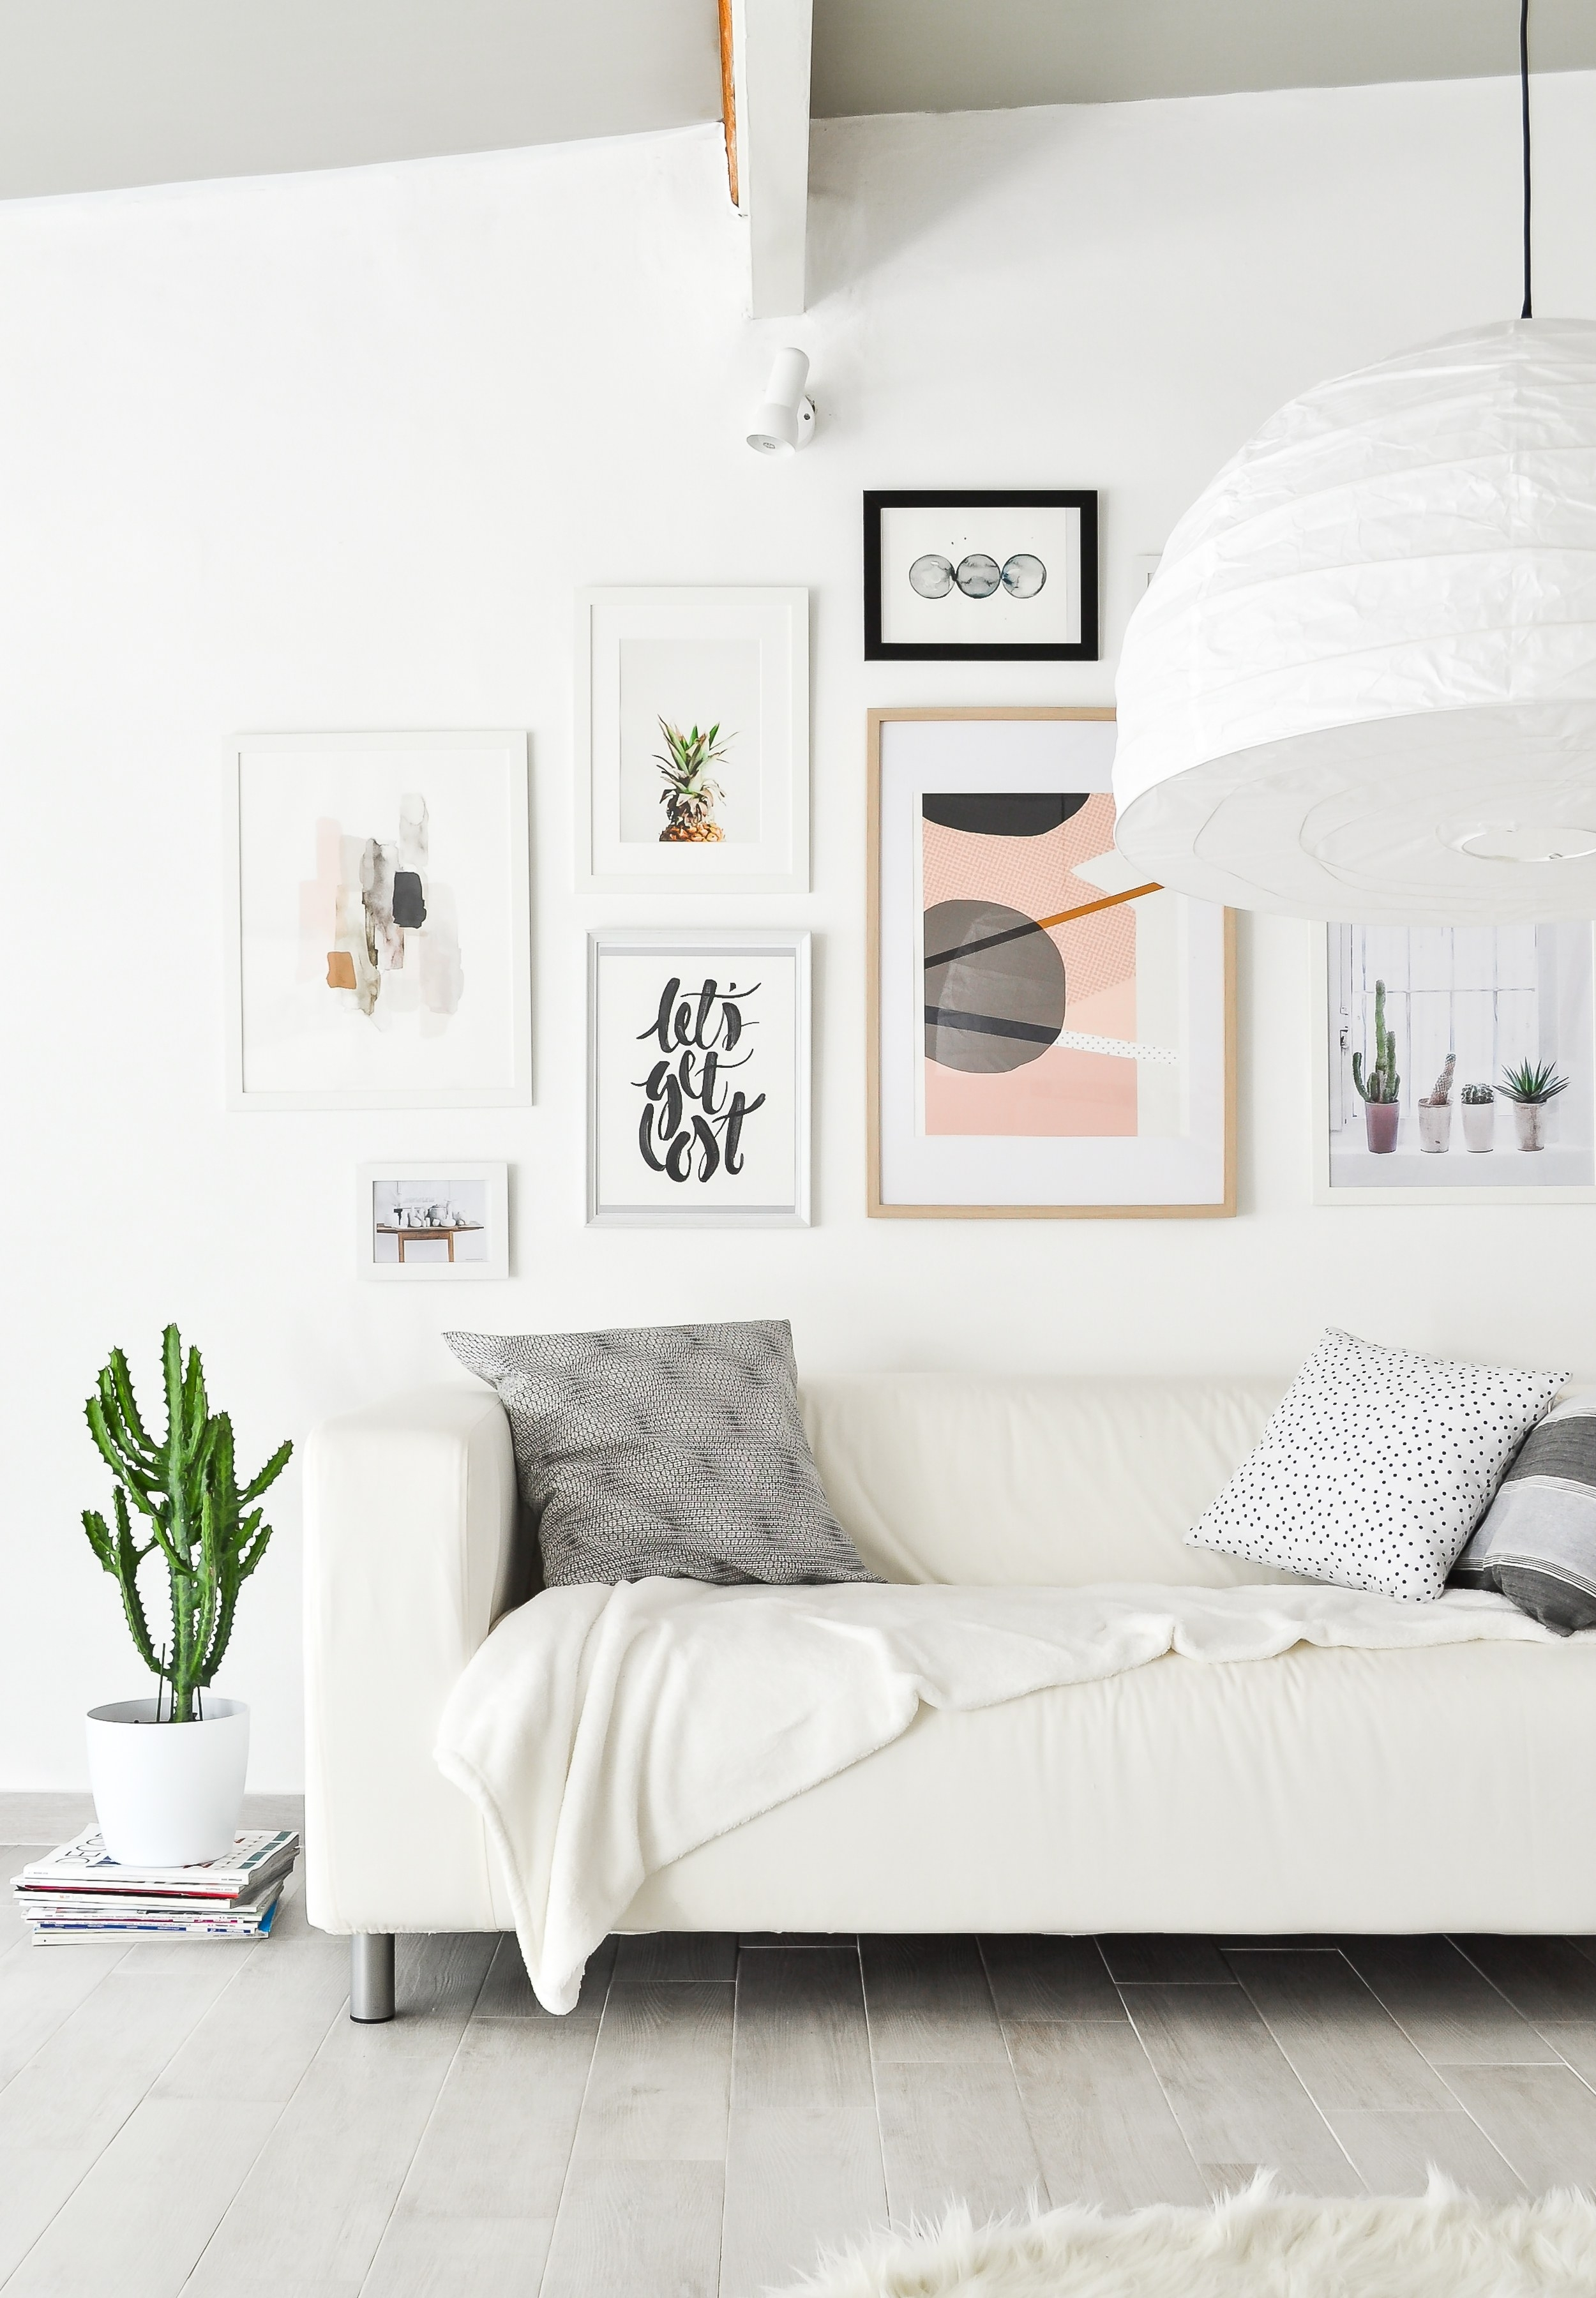 Where To Buy Affordable Art Online | Architectural Digest For Most Recent Affordable Wall Art (Gallery 9 of 20)